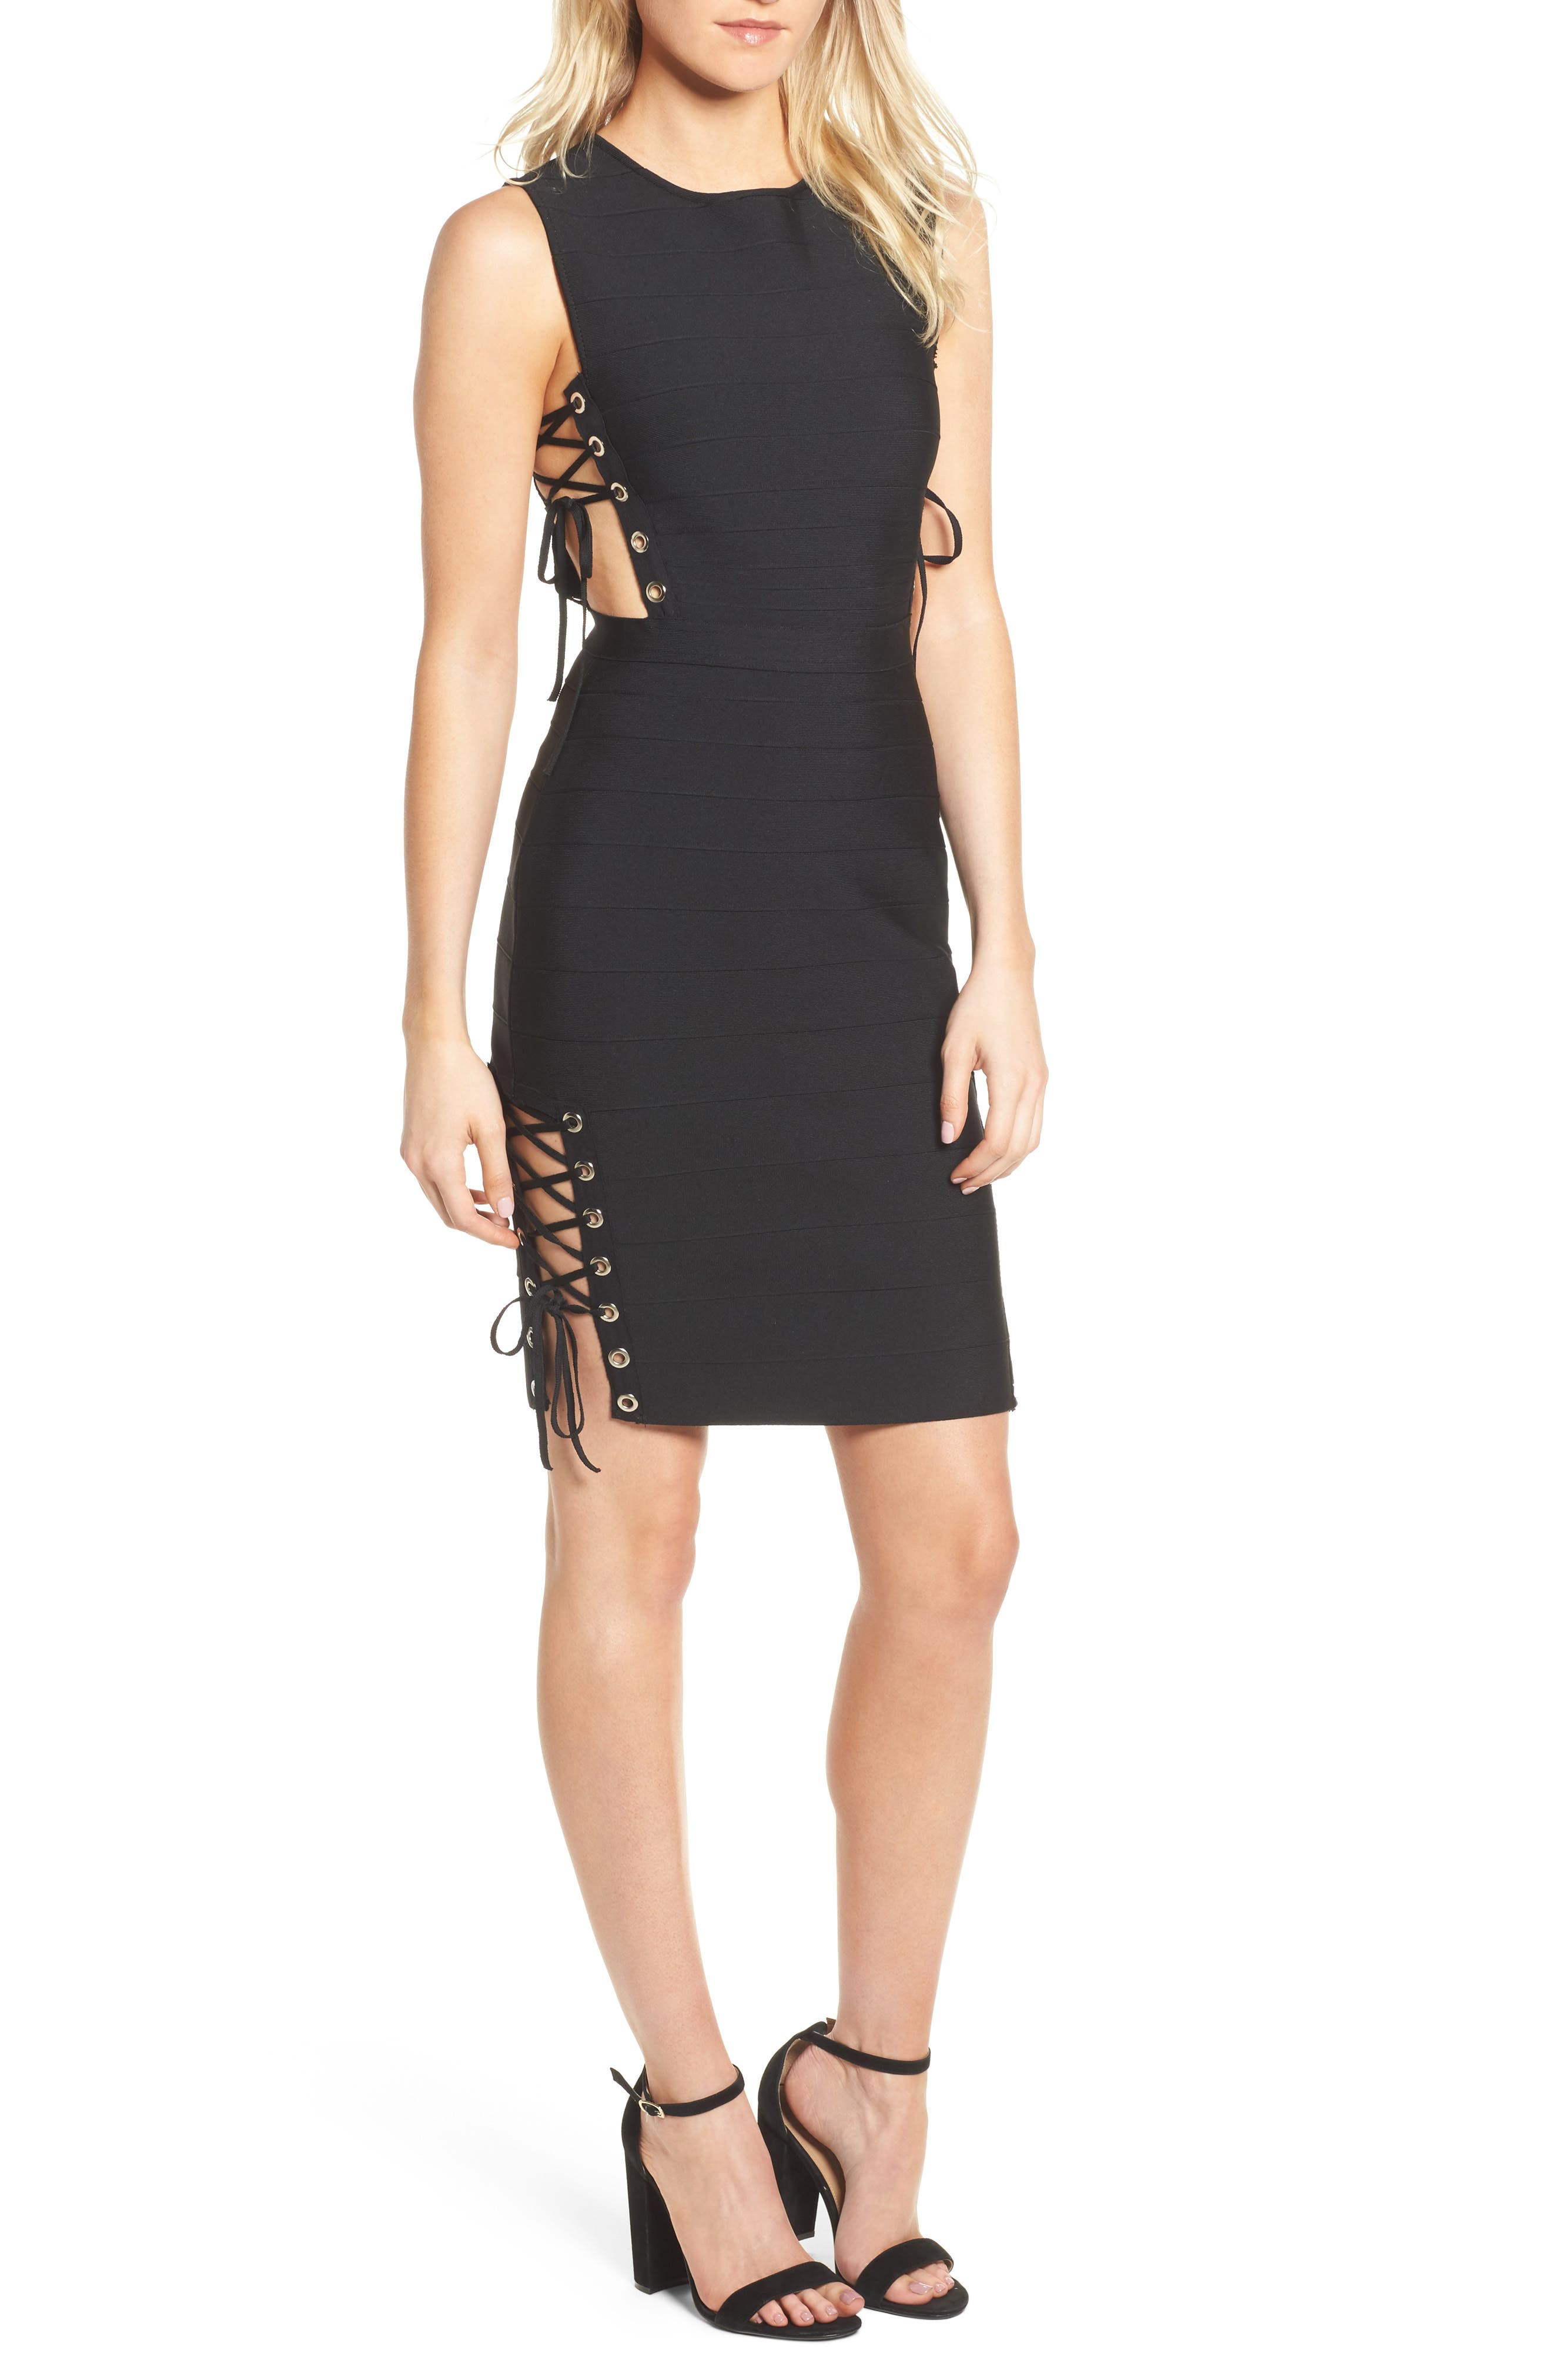 Sentimental NY Lace-Up Bandage Dress